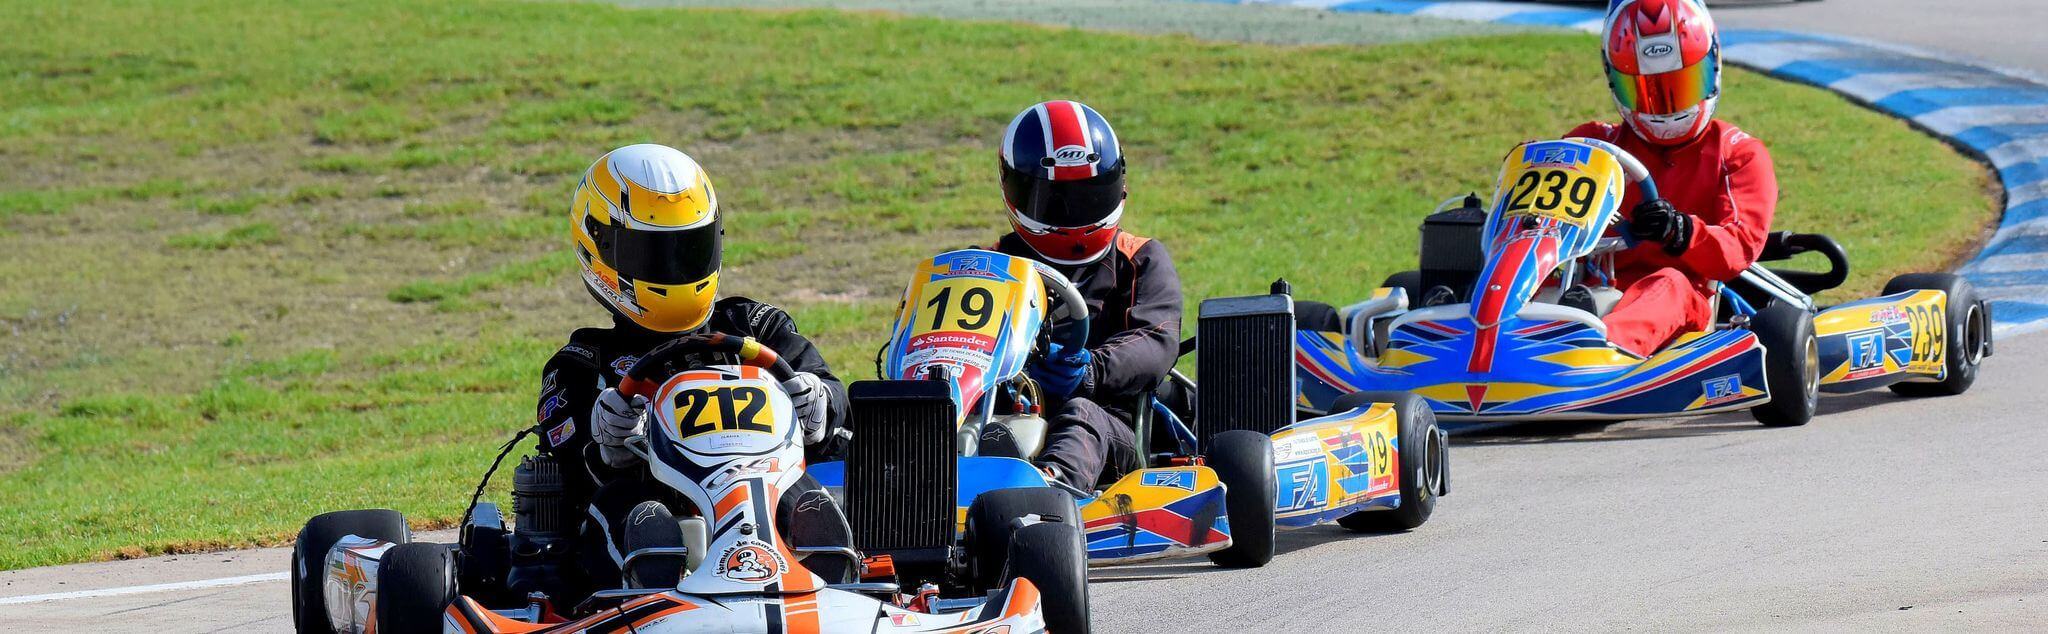 Karting in Segovia